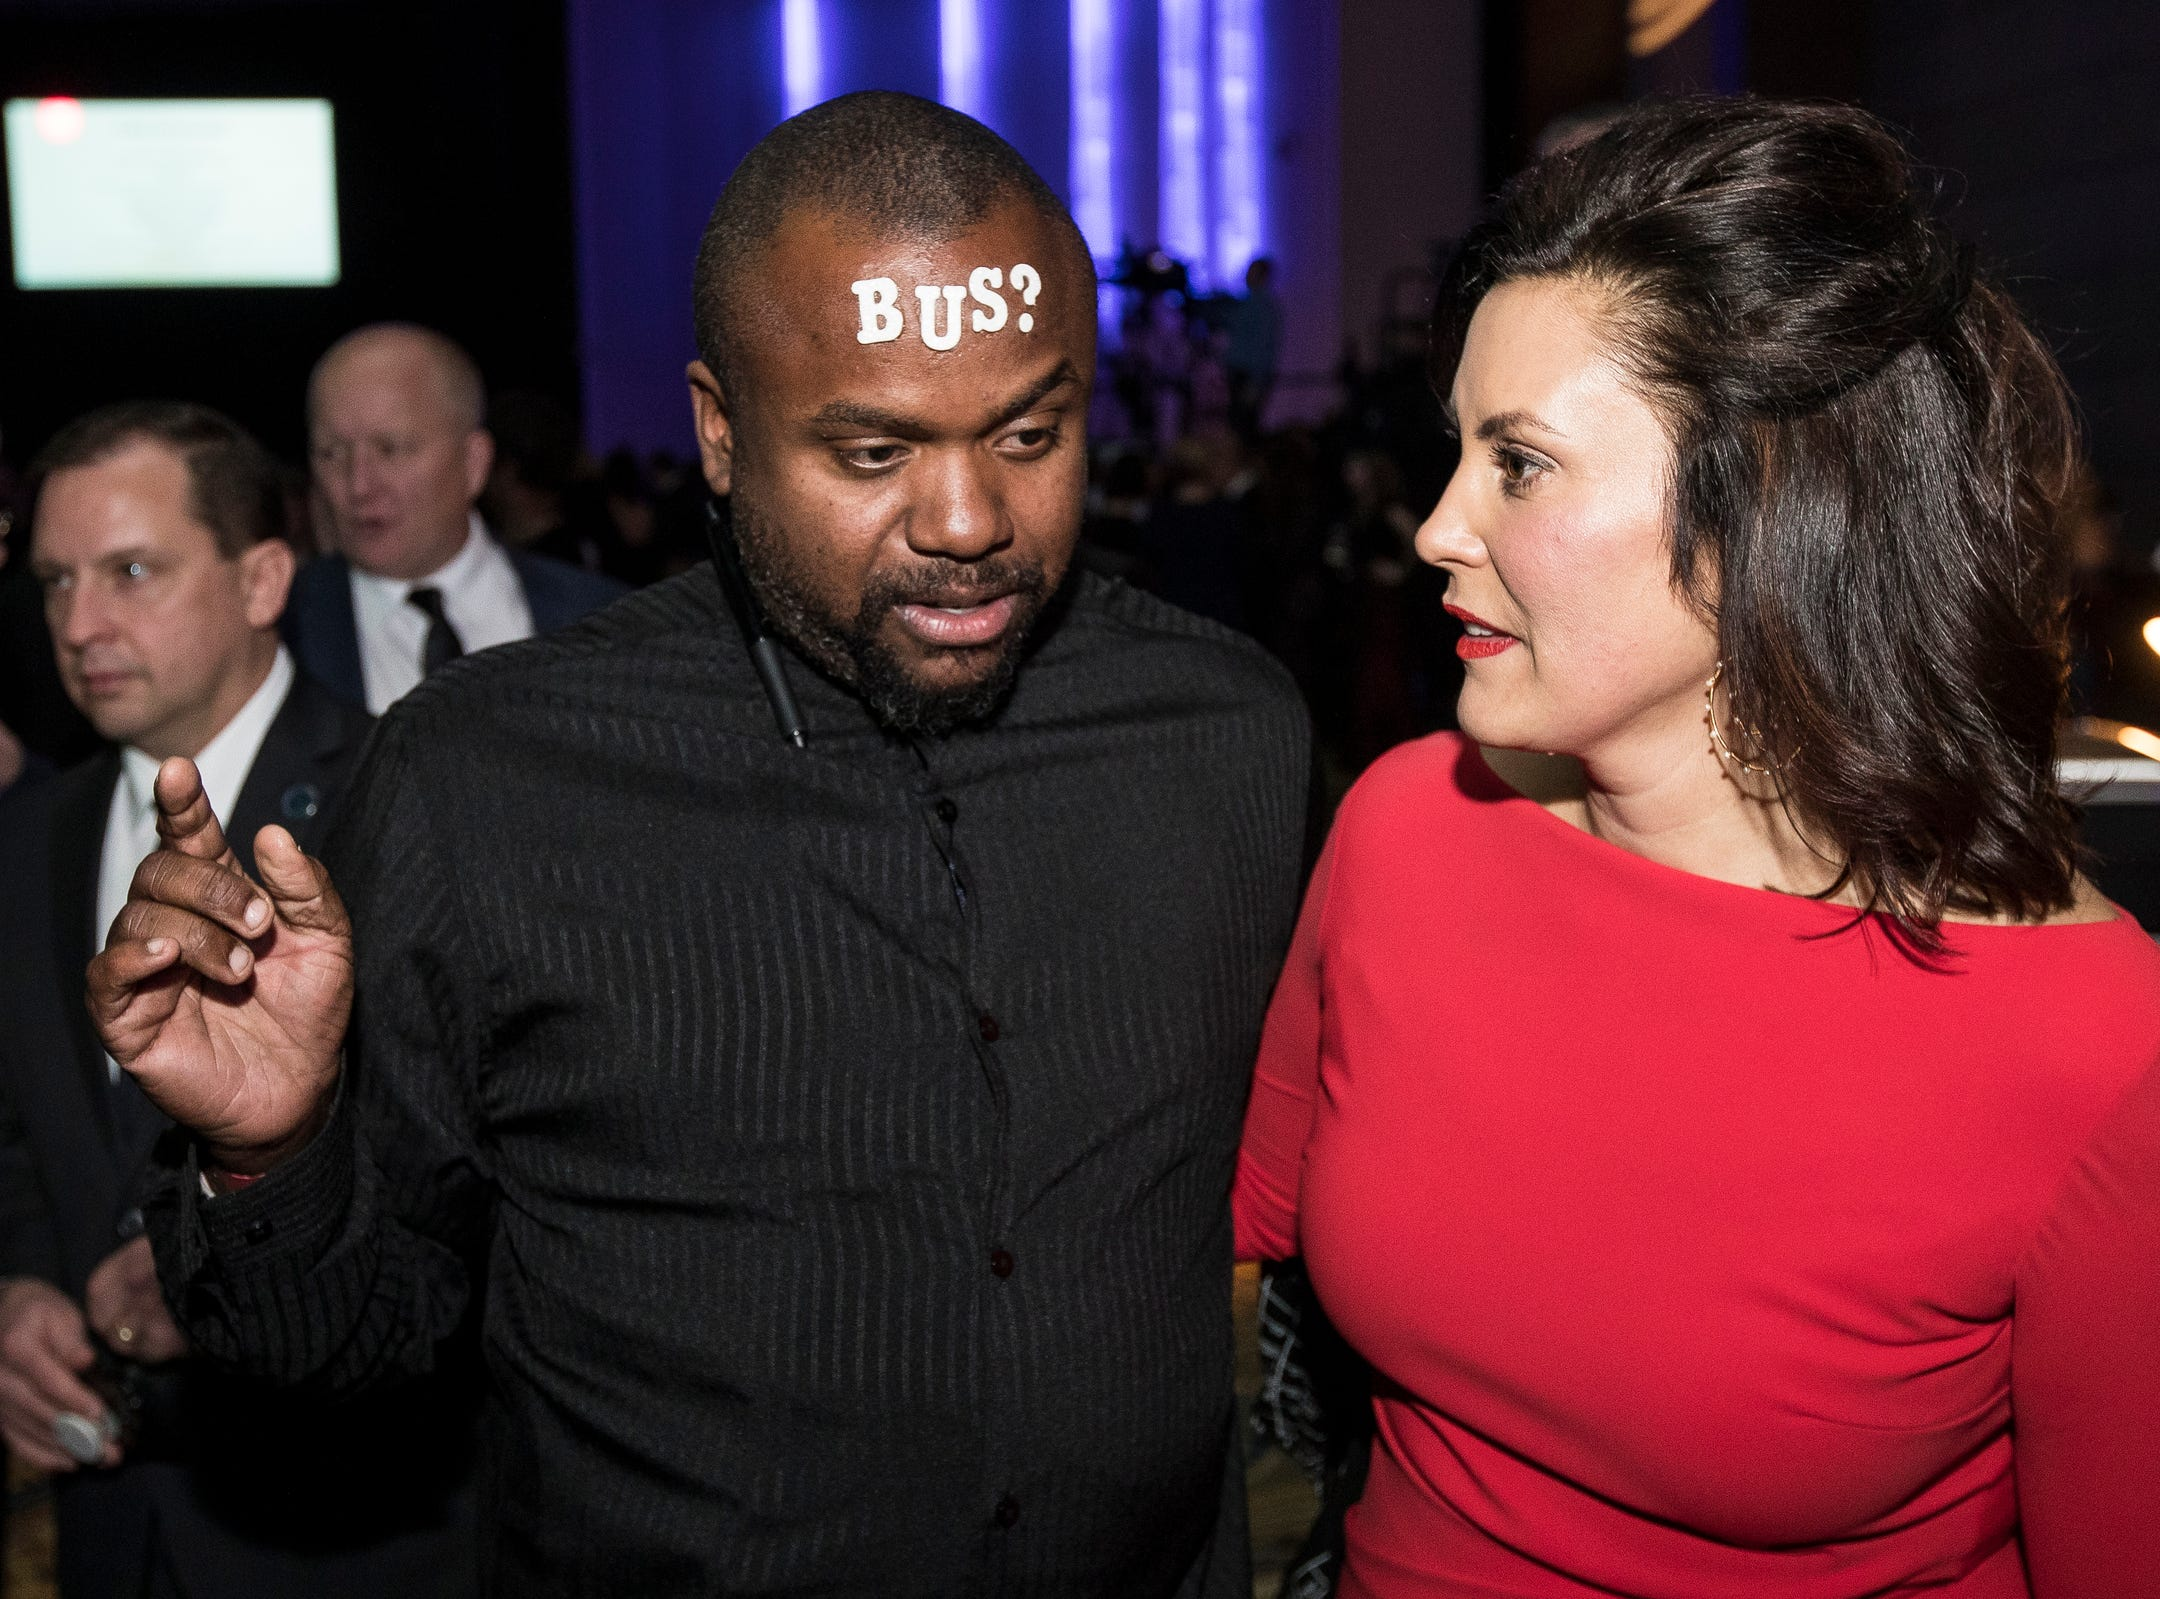 Michael Cunningham of Detroit, a bus advocate talks to Governor Gretchen Whitmer during the inaugural ball at Cobo Center in Detroit on Tuesday, Jan. 1, 2019.